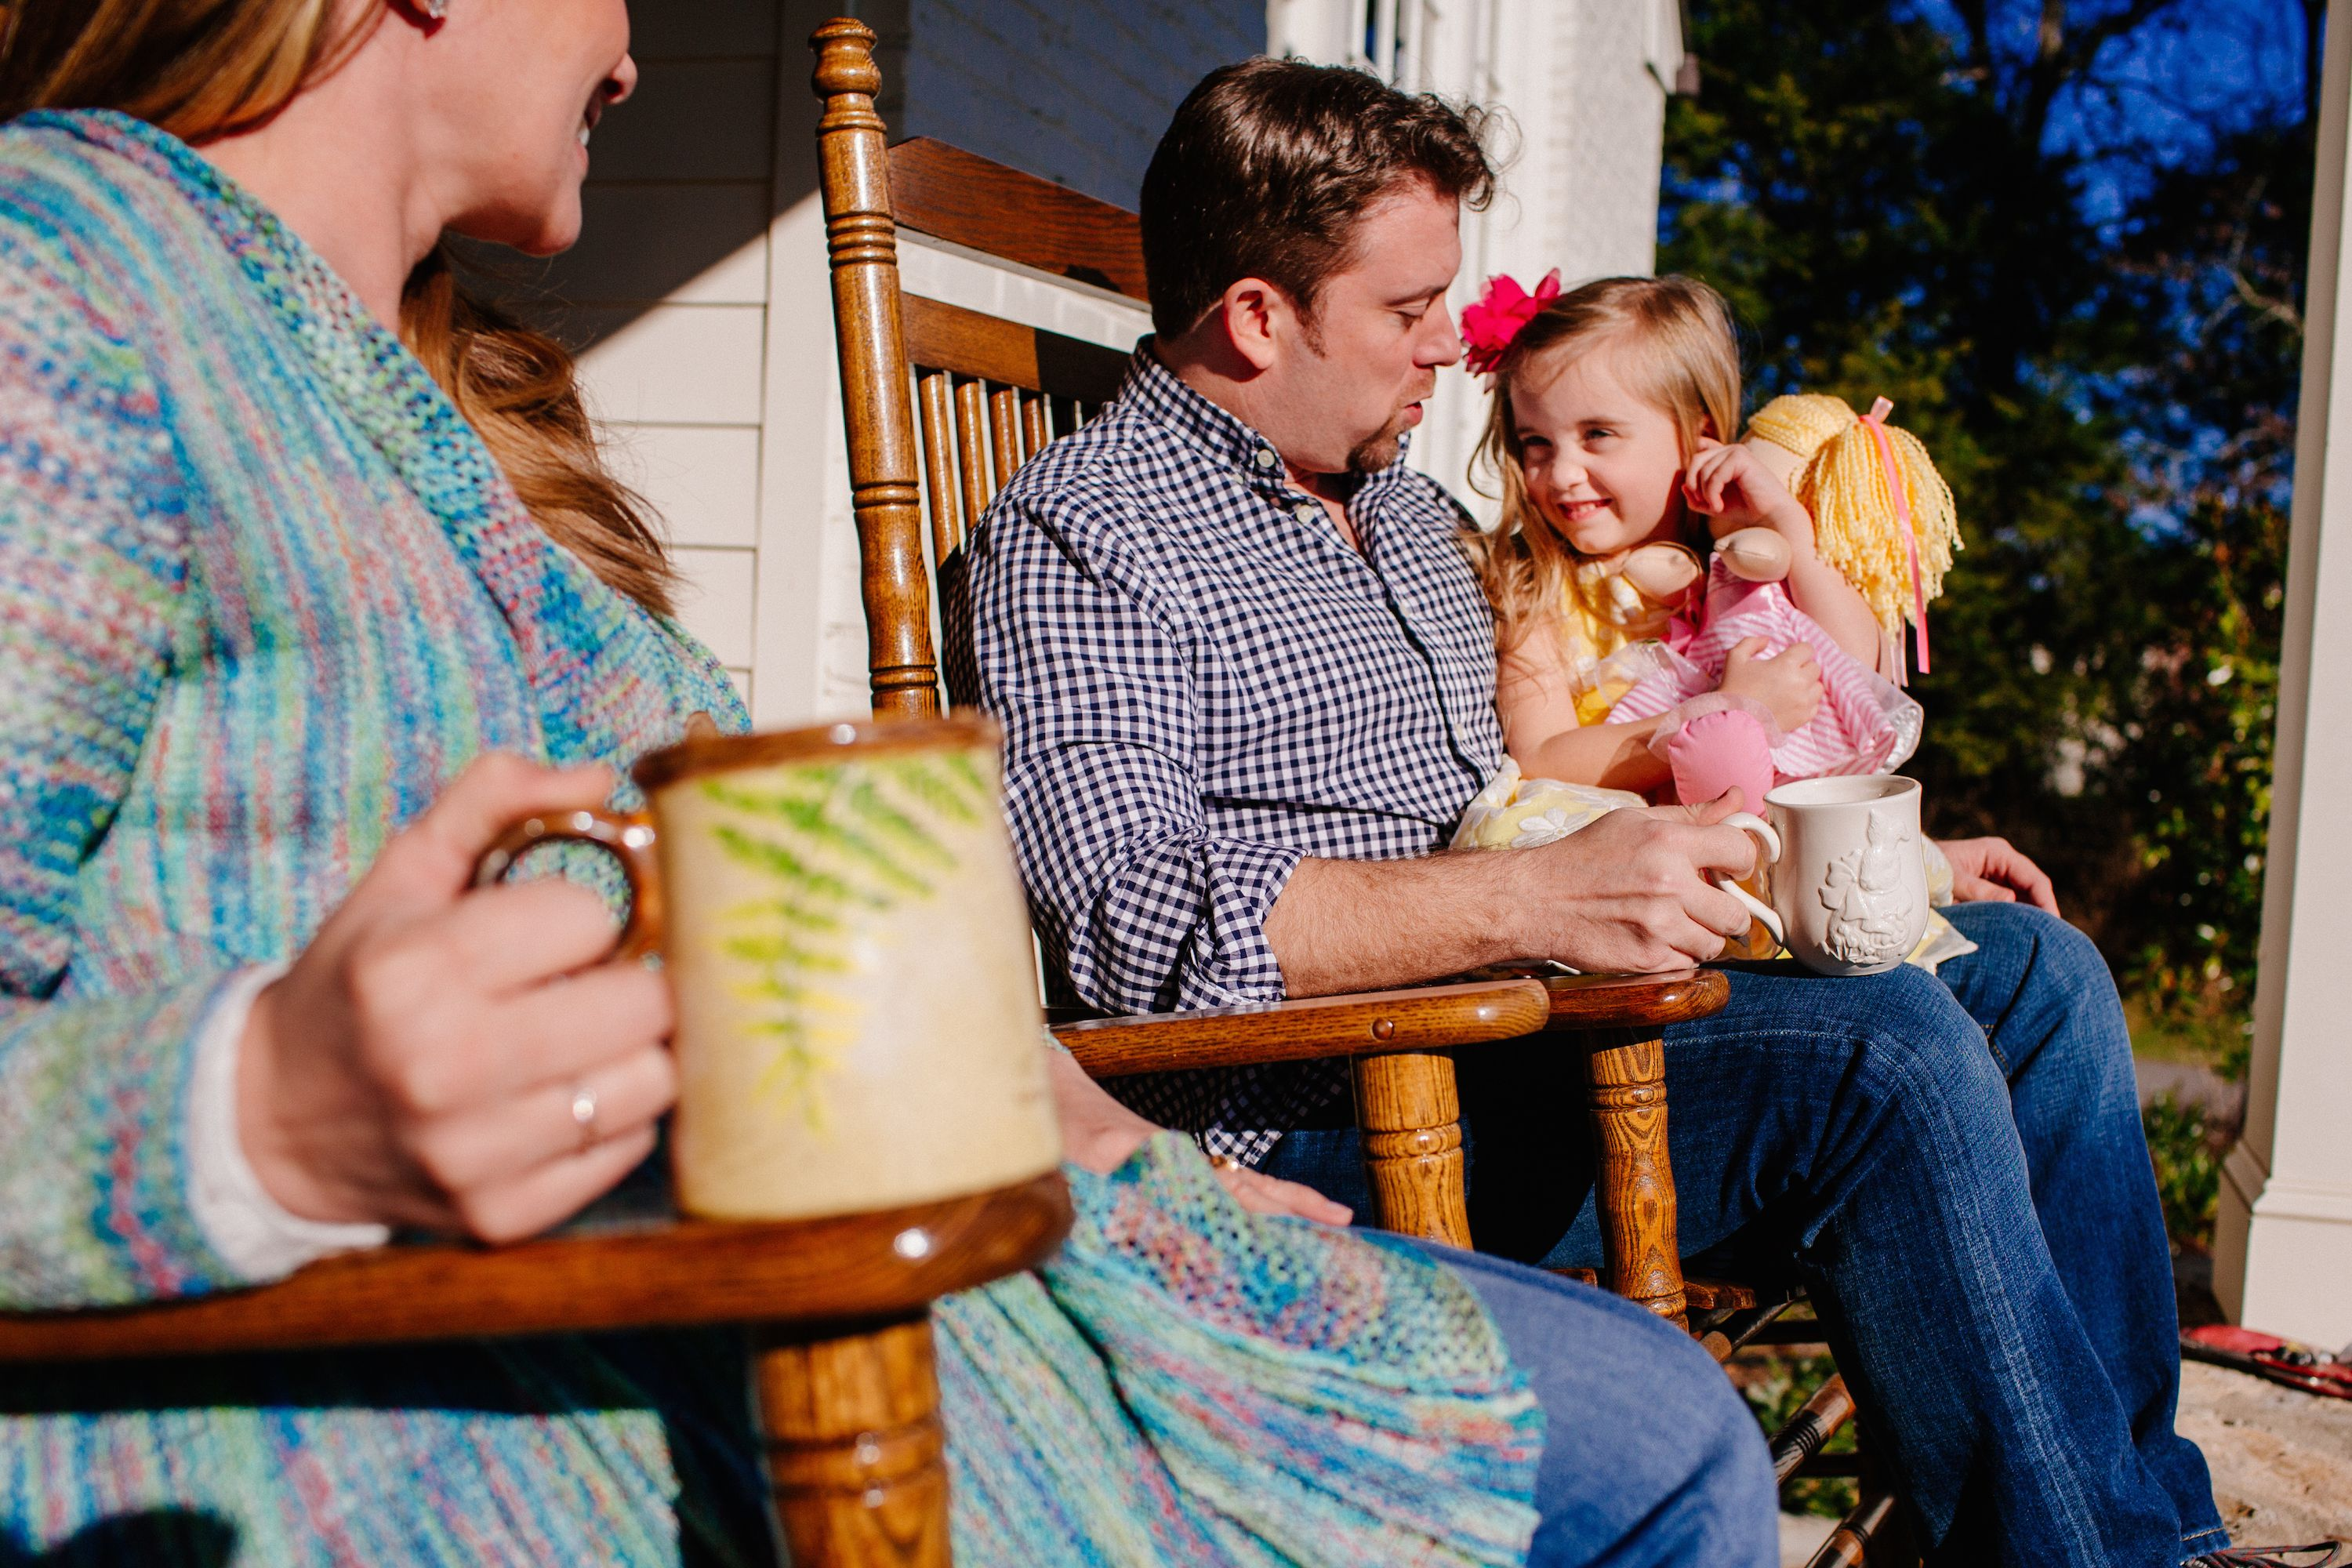 Make The Front Porch A Go To Spot For Family Time During The Warmer Months With Inviting Seating And D Cracker Barrel Front Porch Decorating Old Country Stores